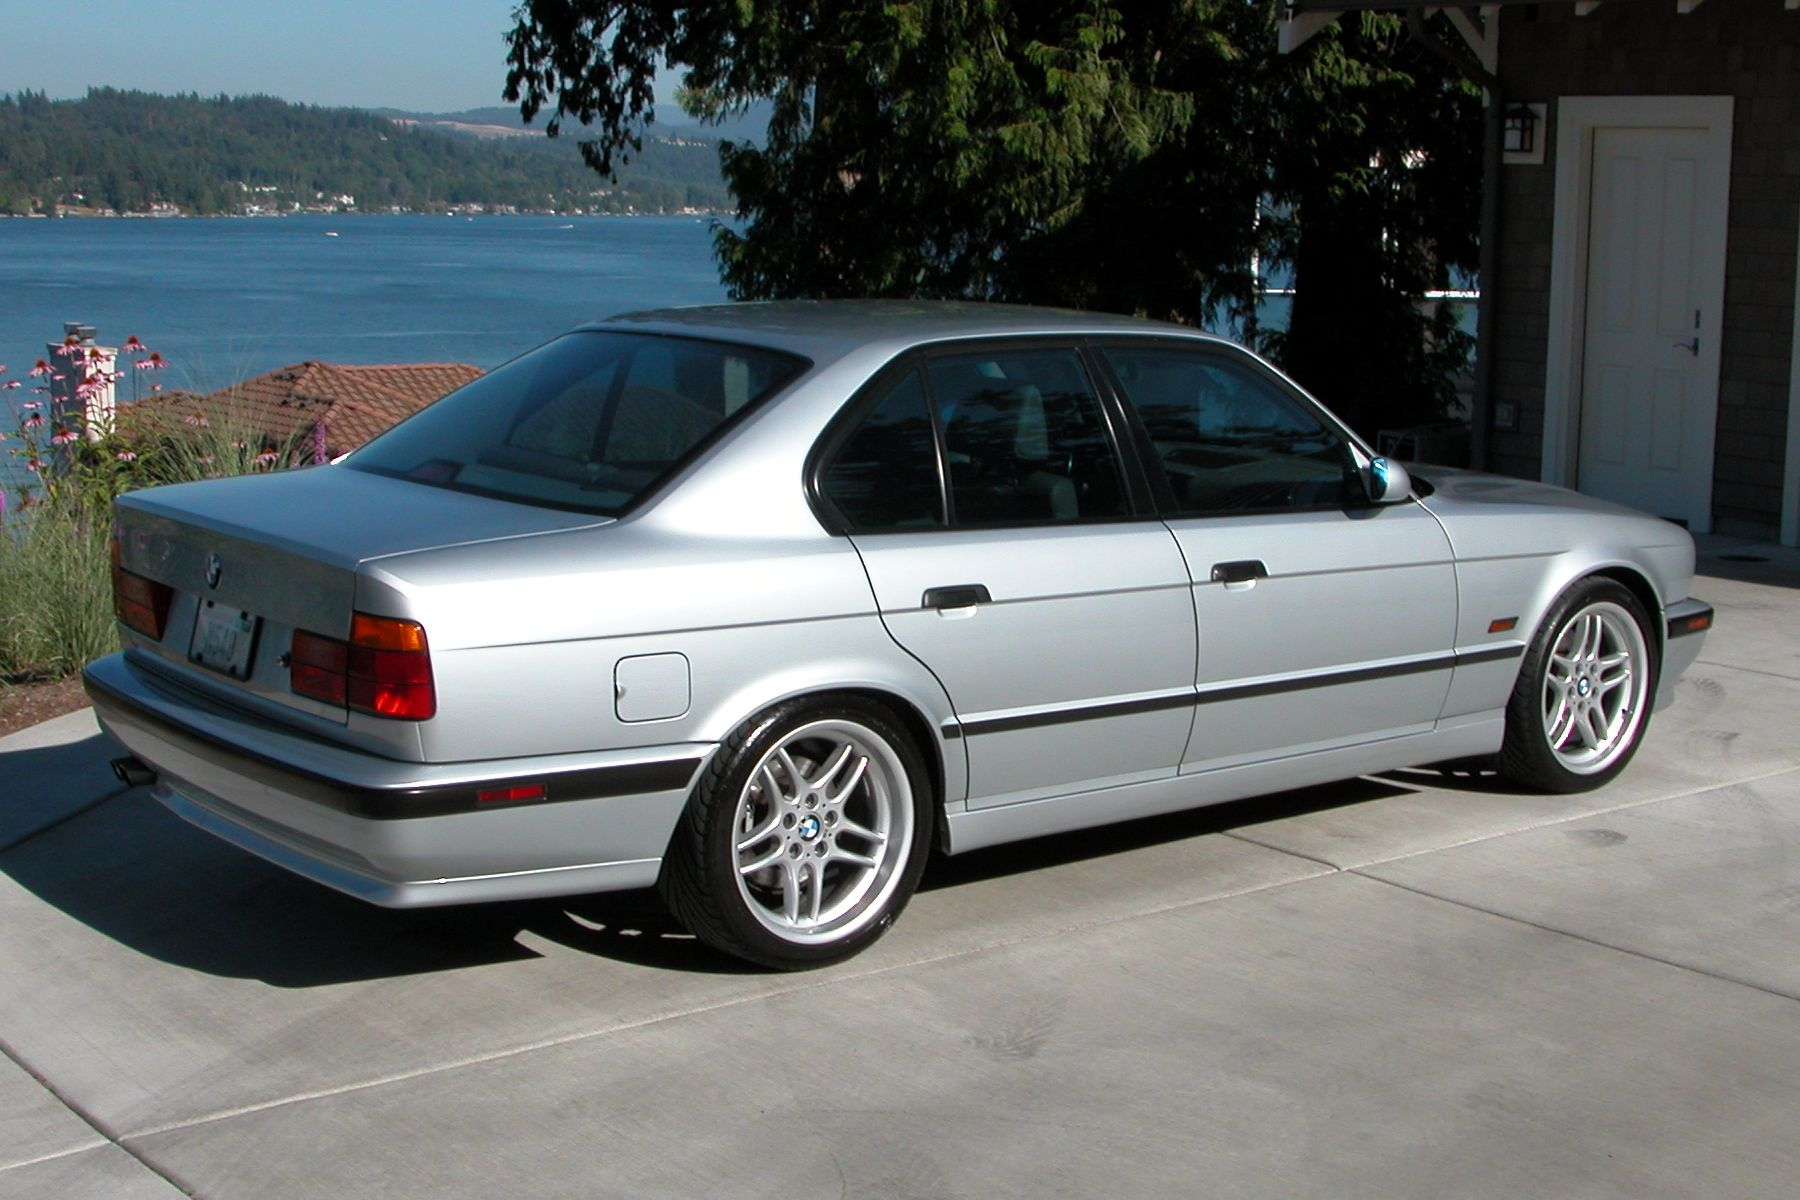 BMW-M5-E34-Facelift.jpg